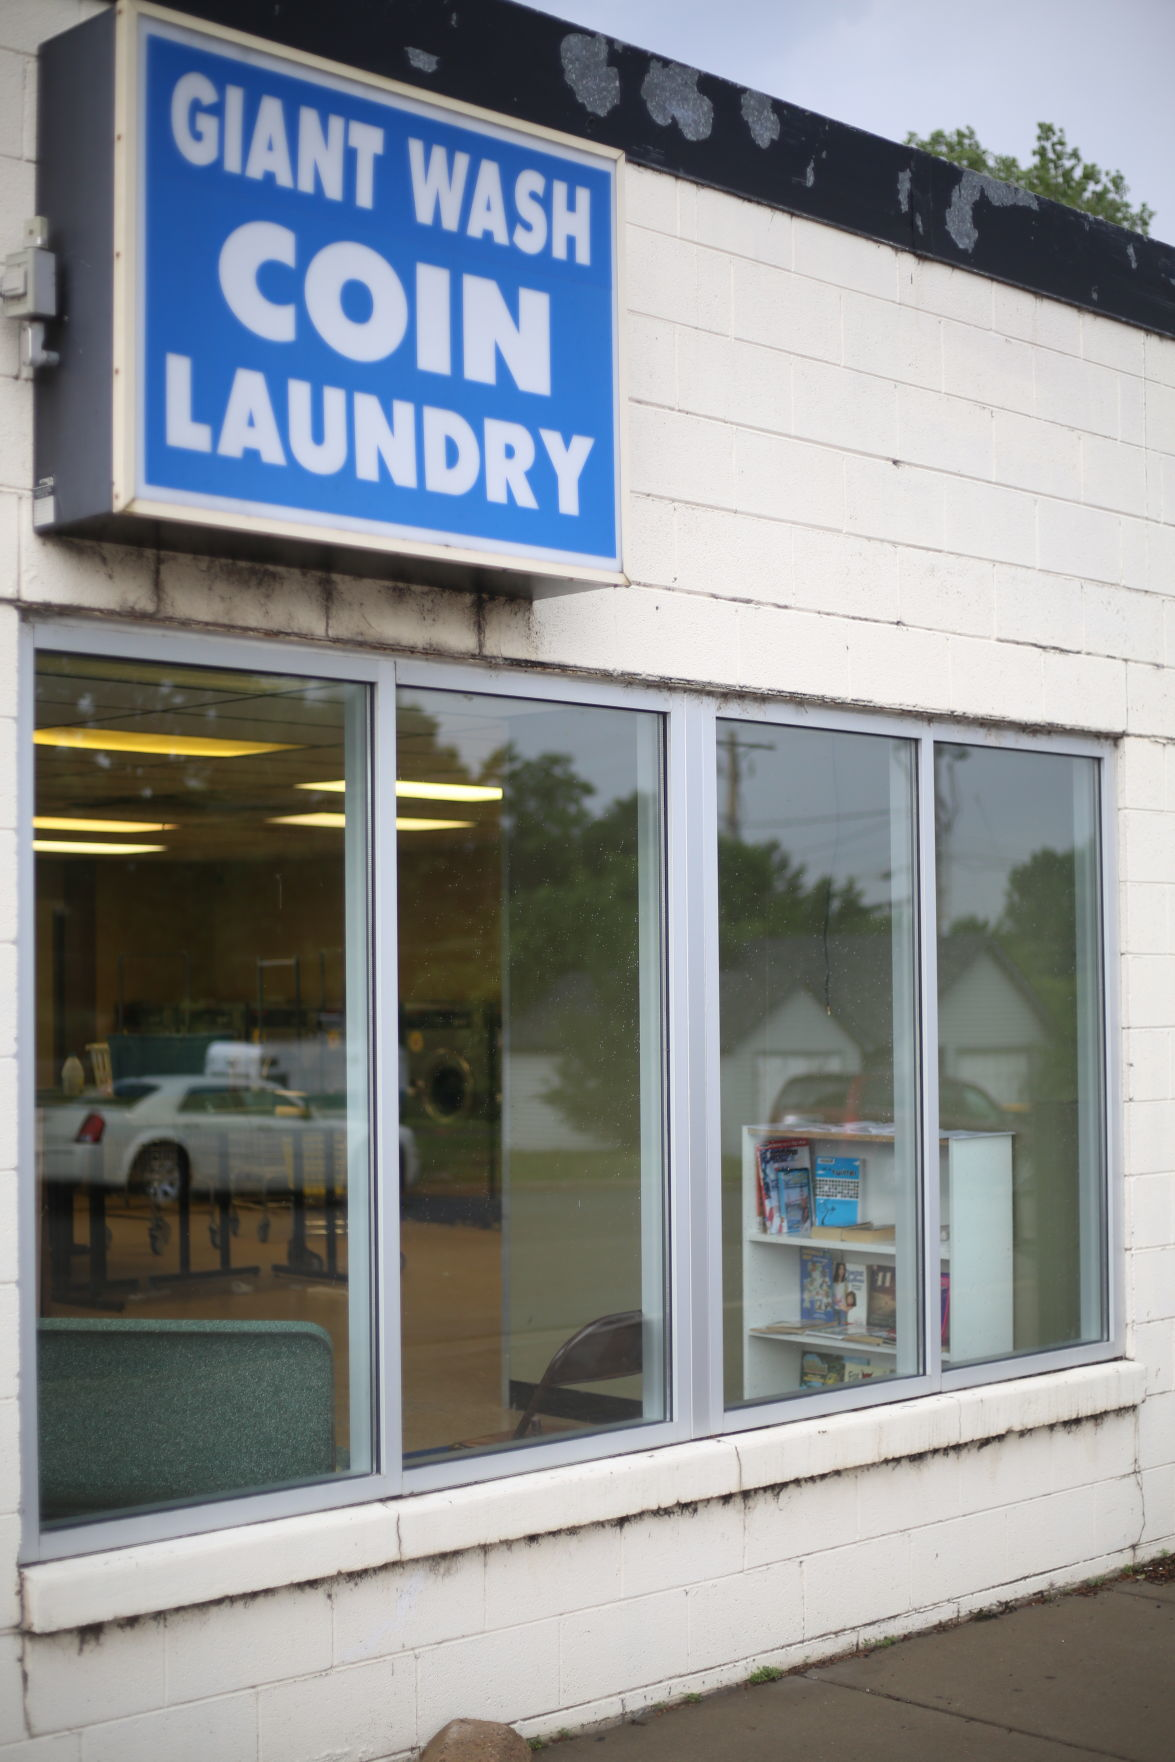 Giant Wash Coin Laundry